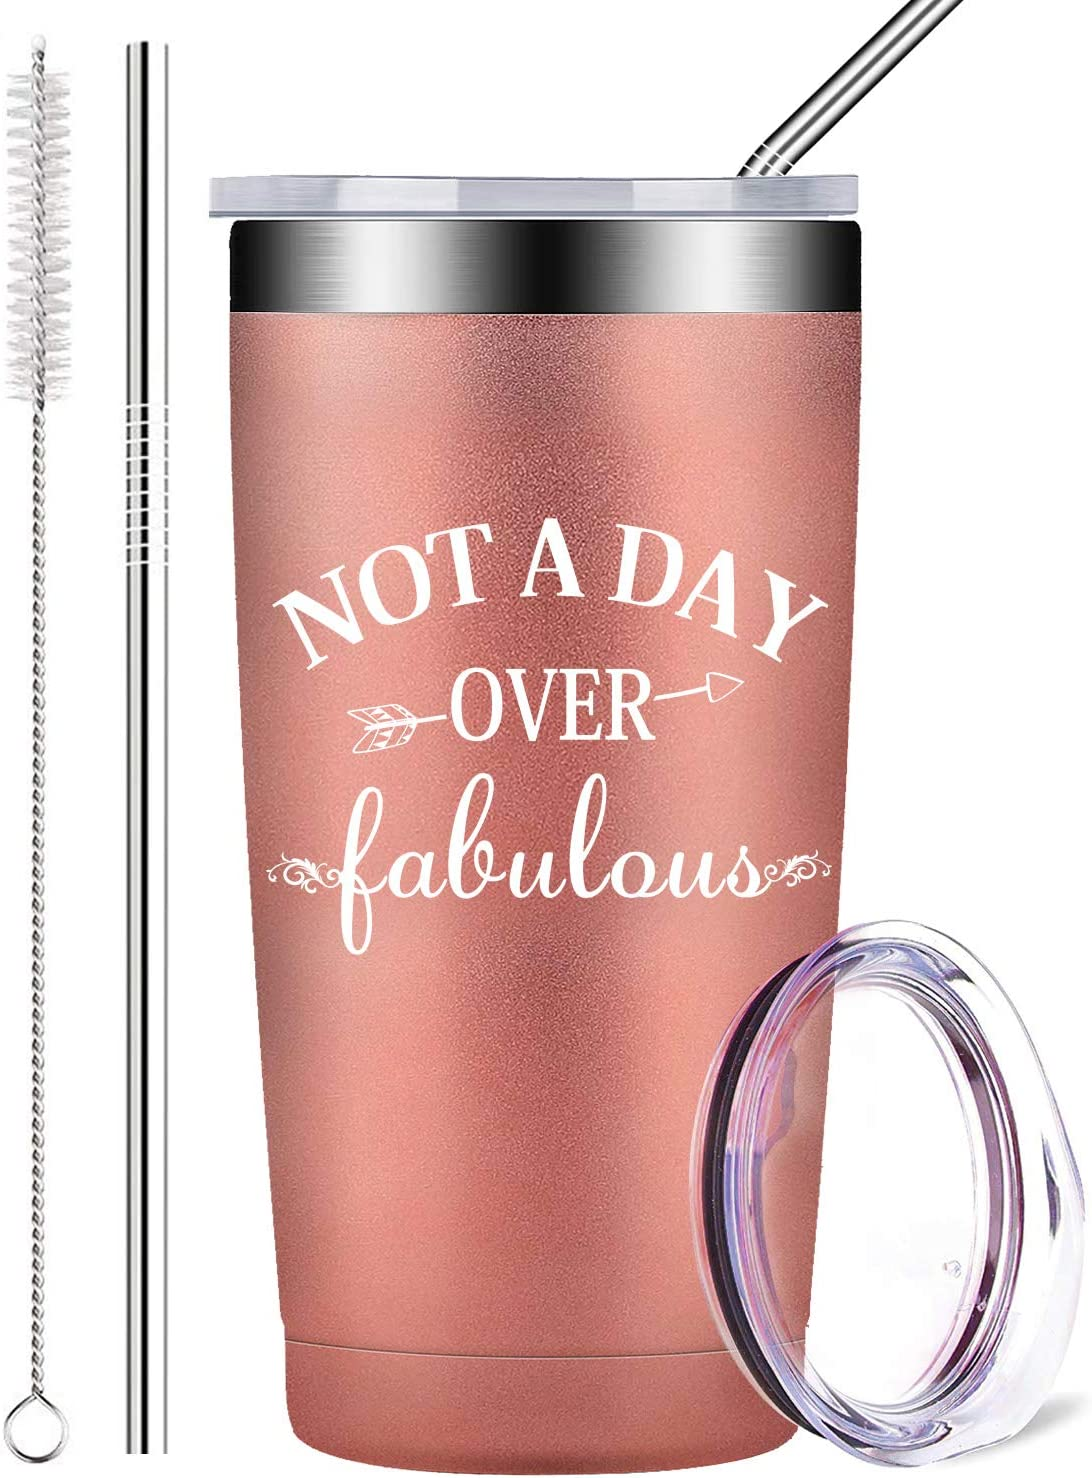 Not A Day Over Fabulous - Stainless Steel Insulated Mug Tumbler With Lid And Straw Wine Travel Cup - 30th 40th 50th 60th 65th 70th Birthday Gifts for Women, Sister, Her Best Friend (20 Oz, Rose Gold)